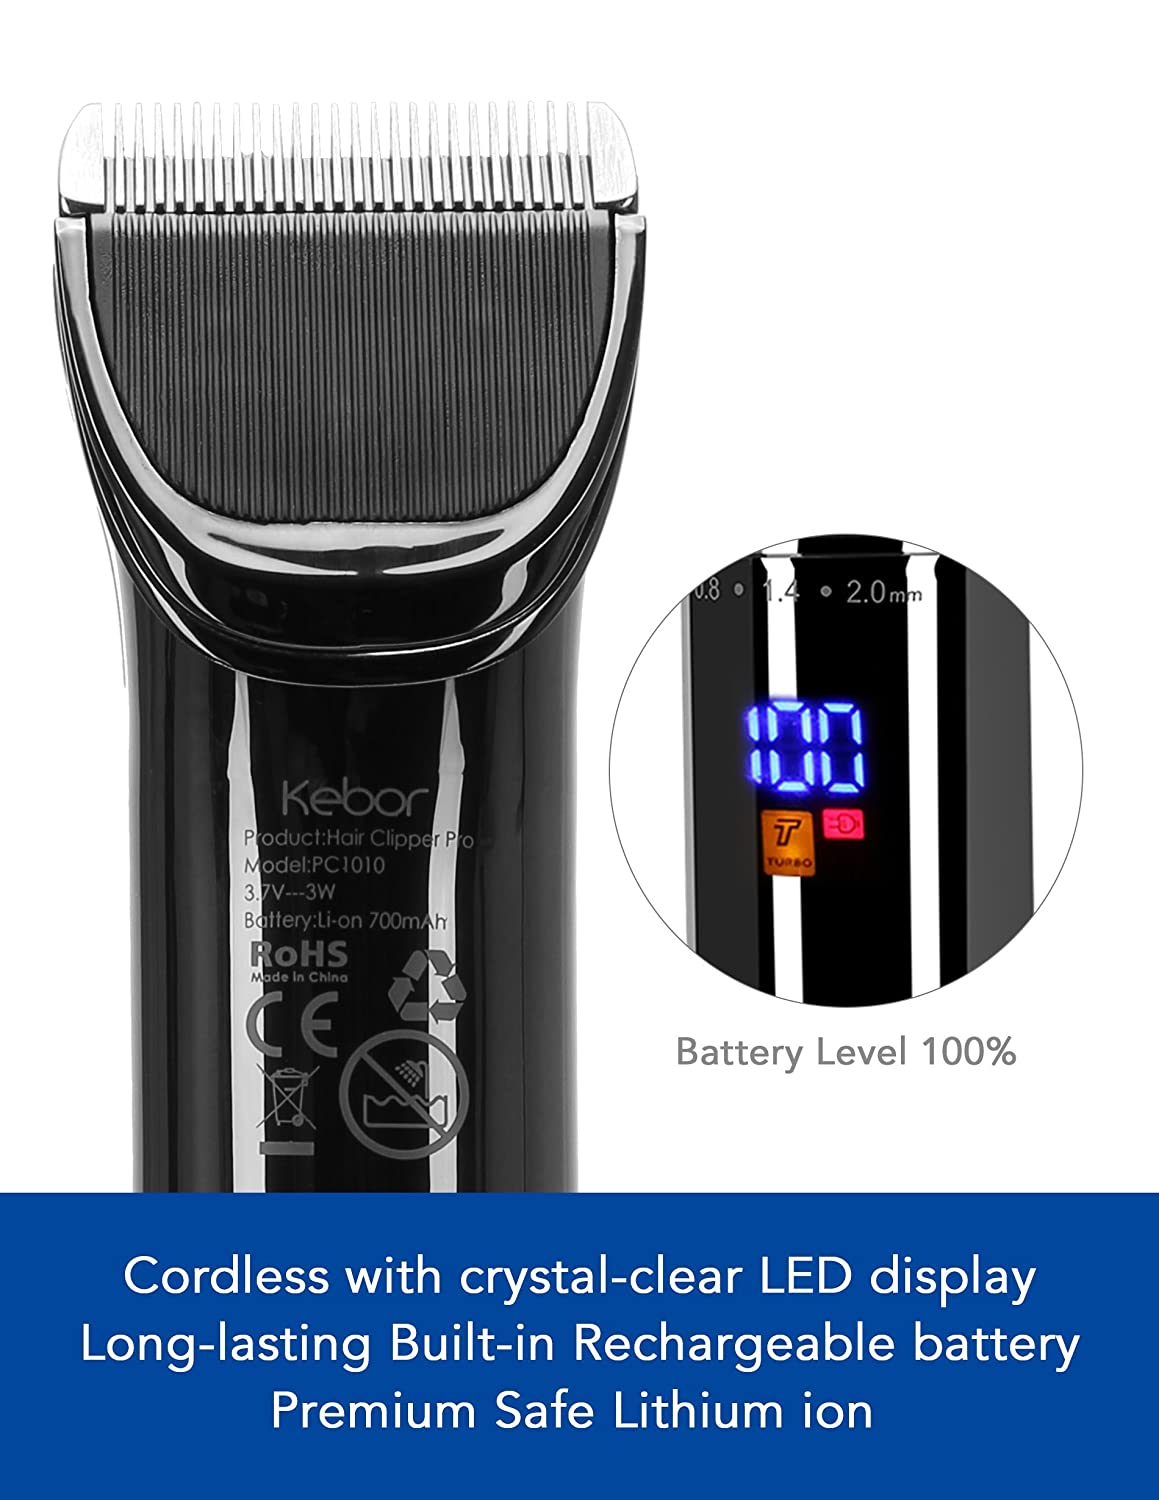 Hair Clippers for Men, Electric Wireless Mens Cordless Self Trimmer Kit, Rechargeable Lithium-ion Battery with LED Display, Charging Stand and Haircut Oil PC1010 Upgraded